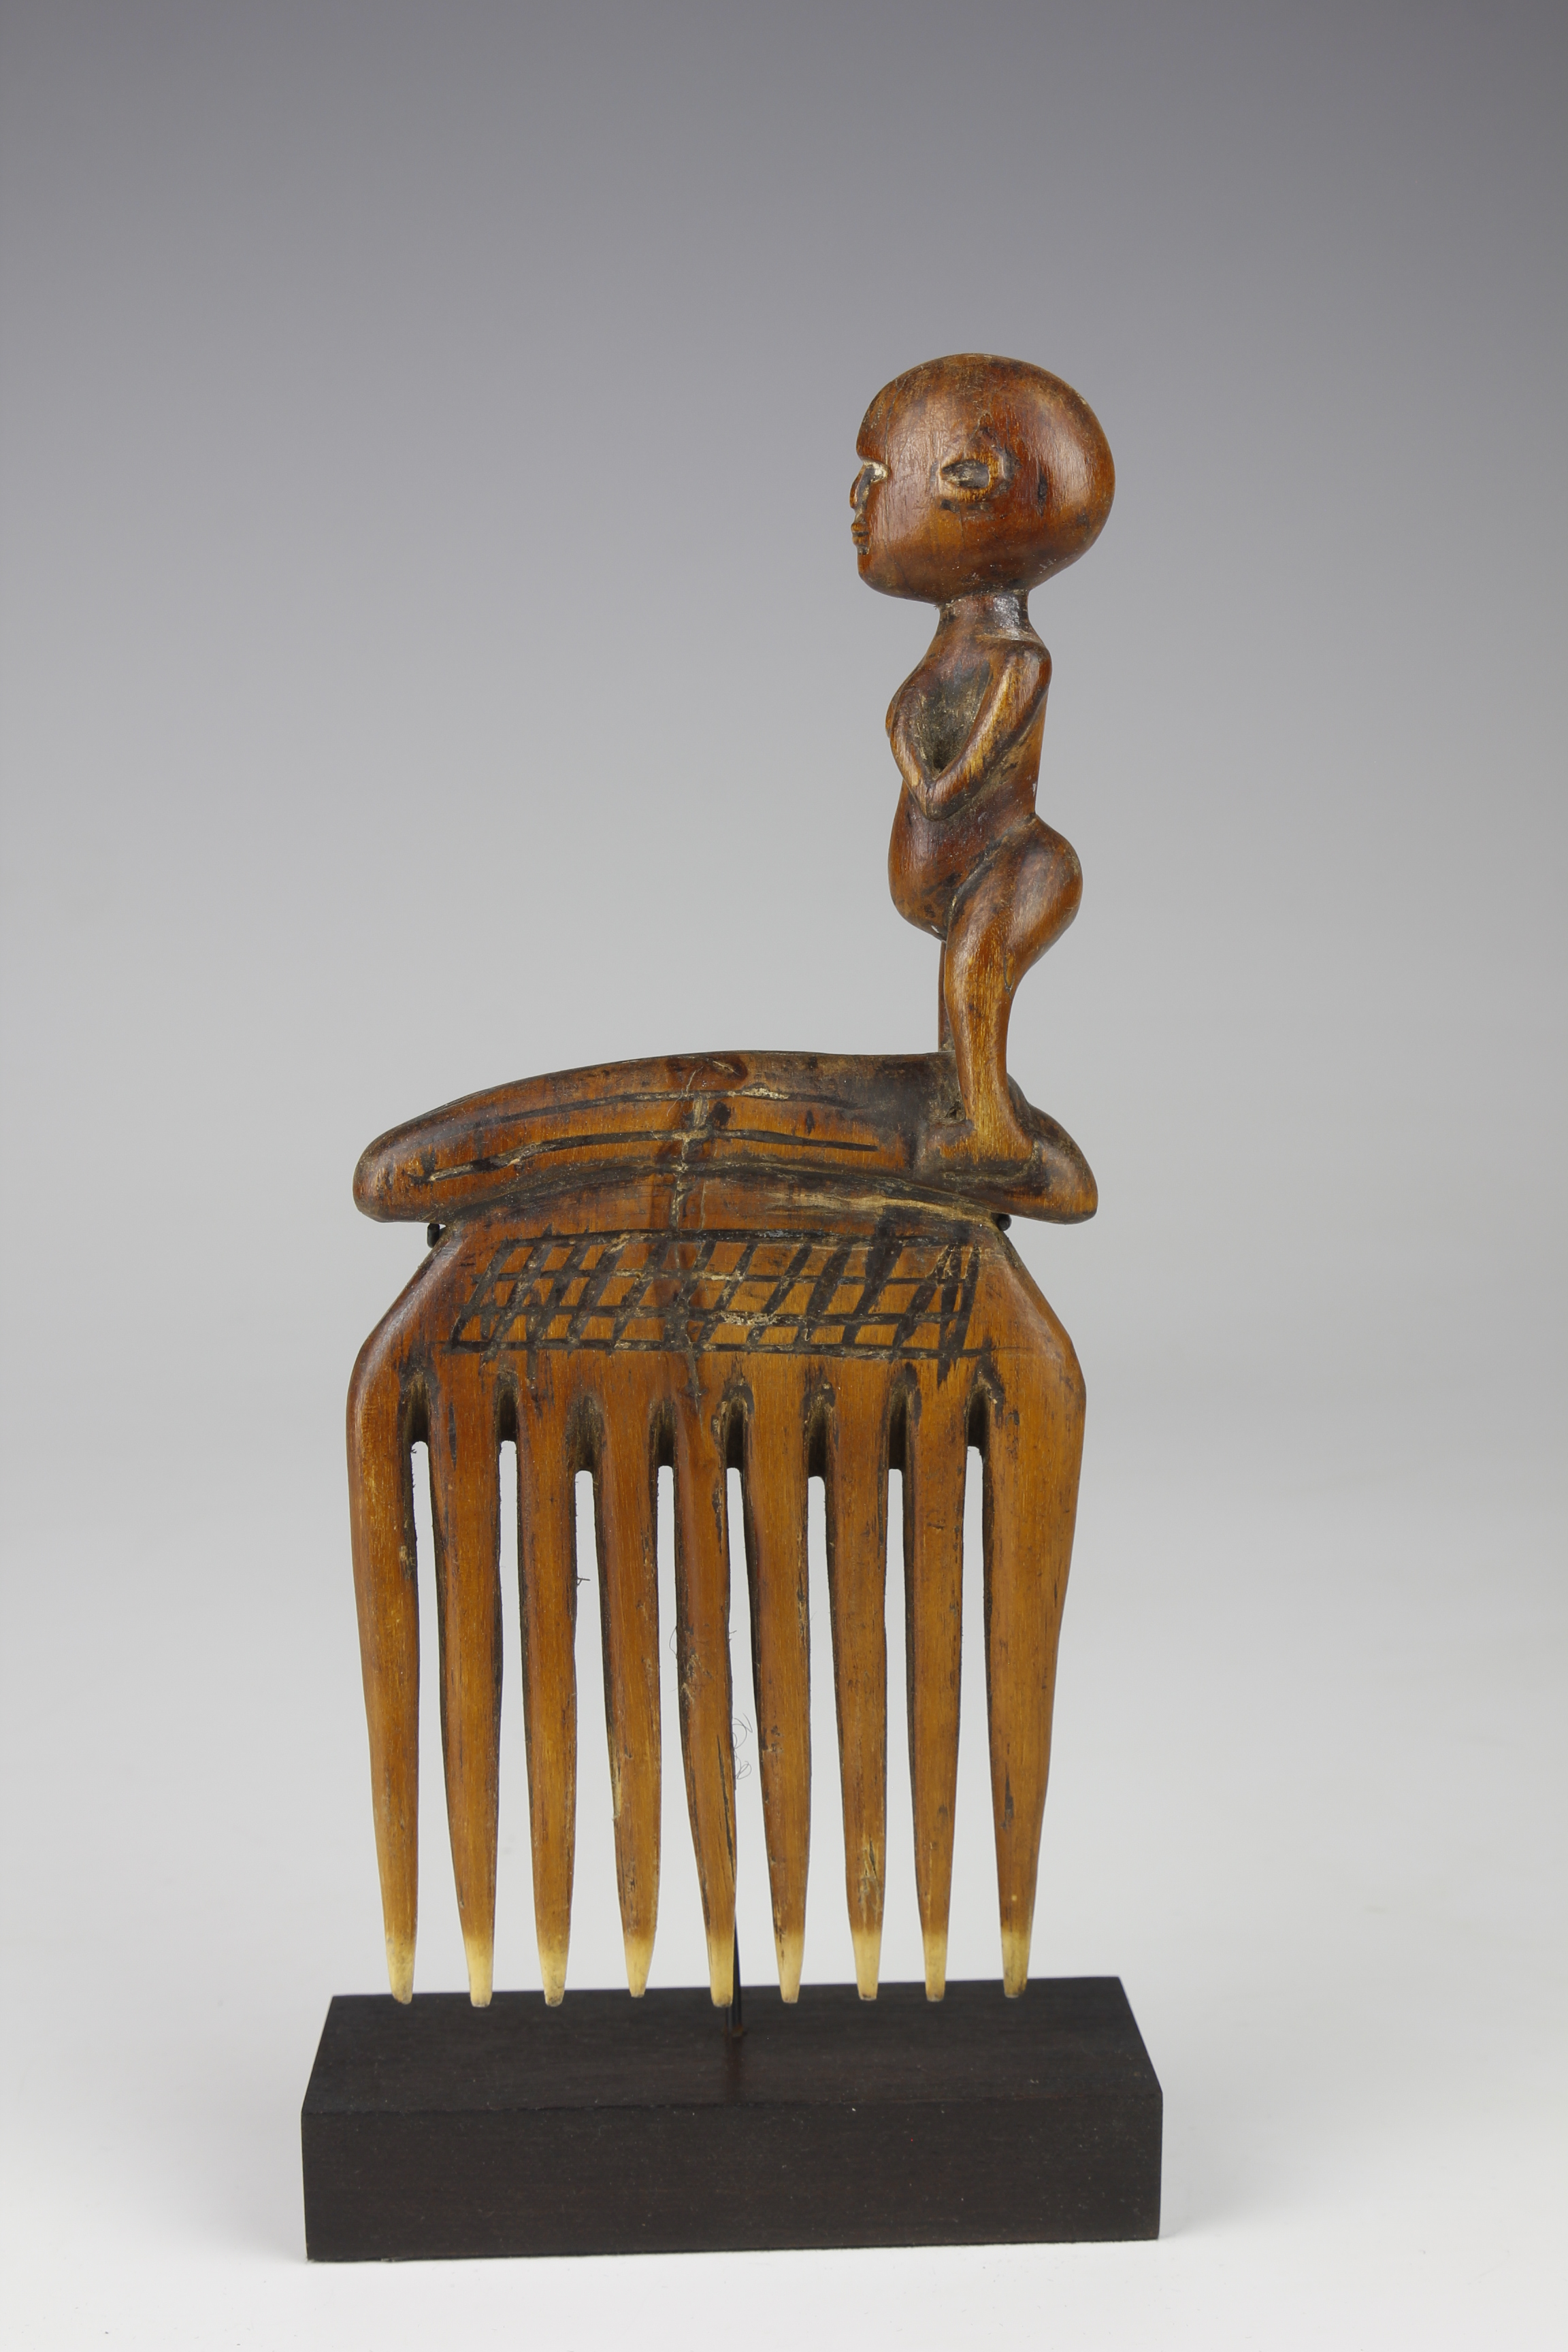 Comb with Standing Figure